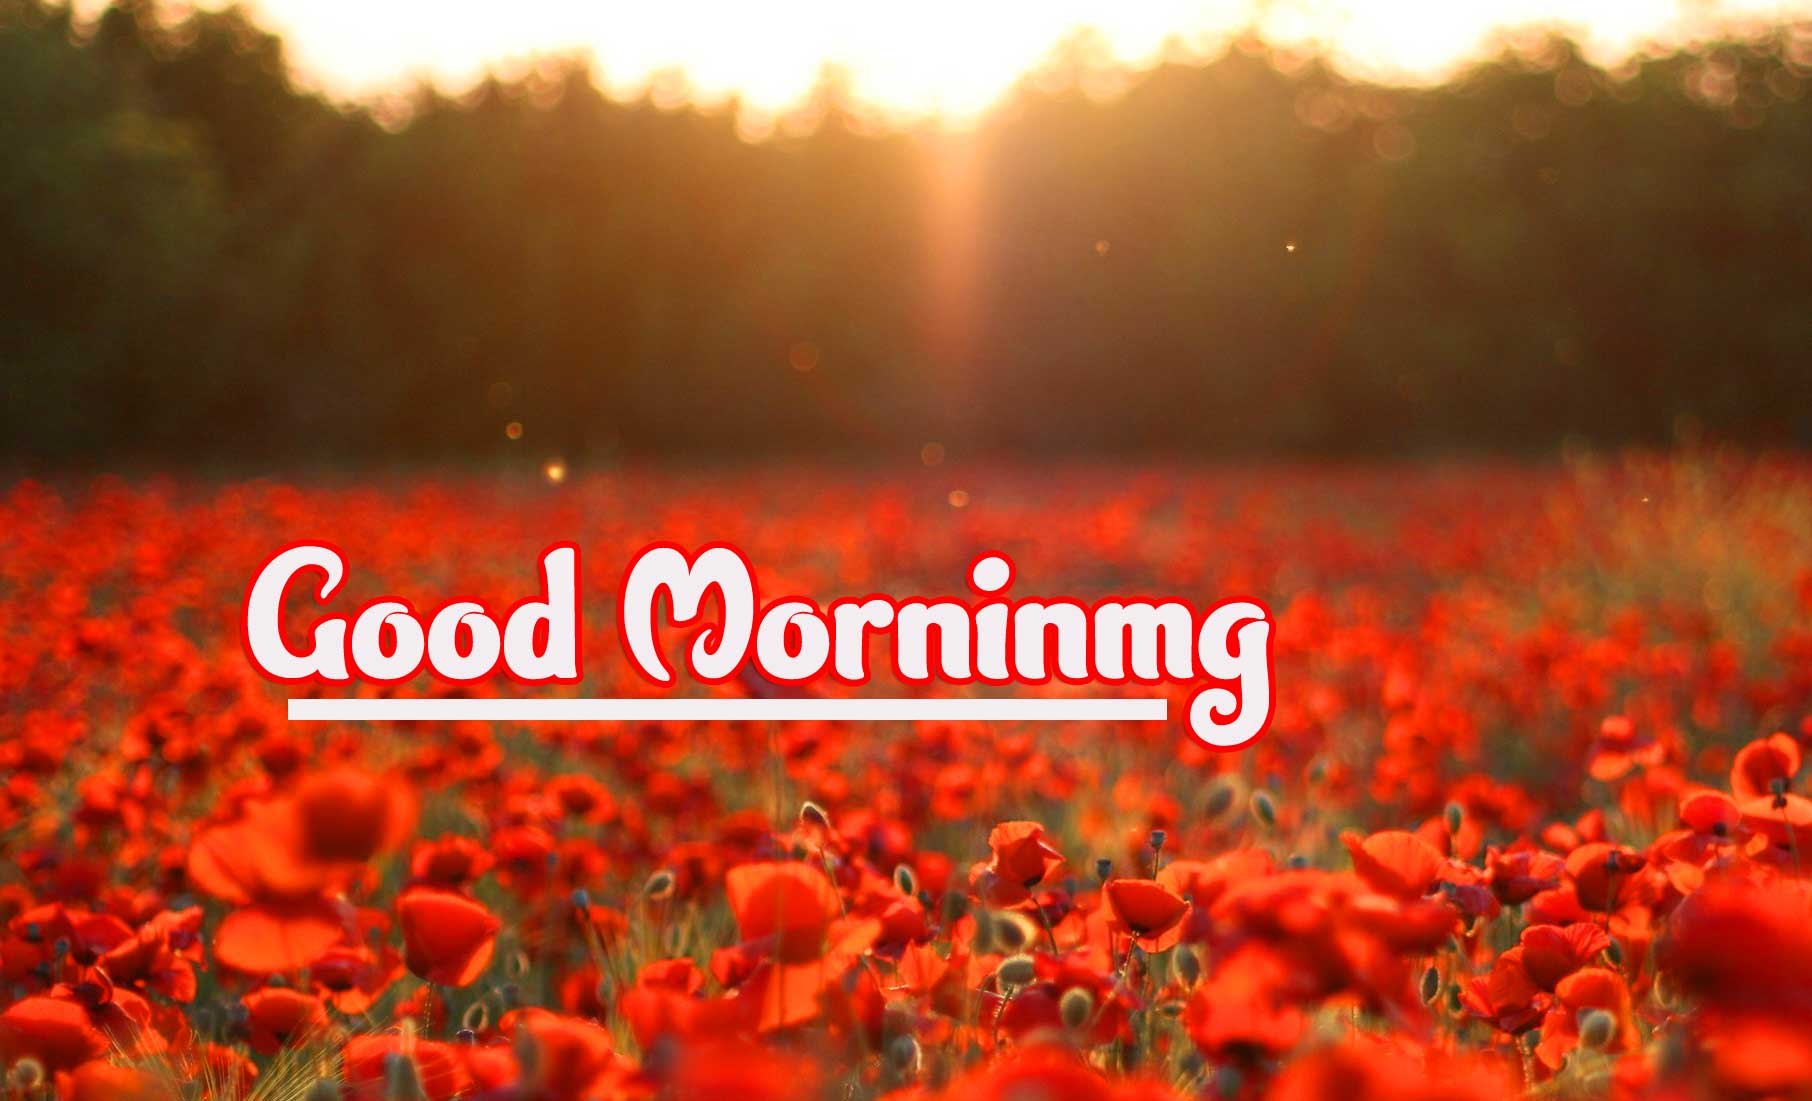 Good Morning 4k Ultra Images Wallpaper pics Free Download